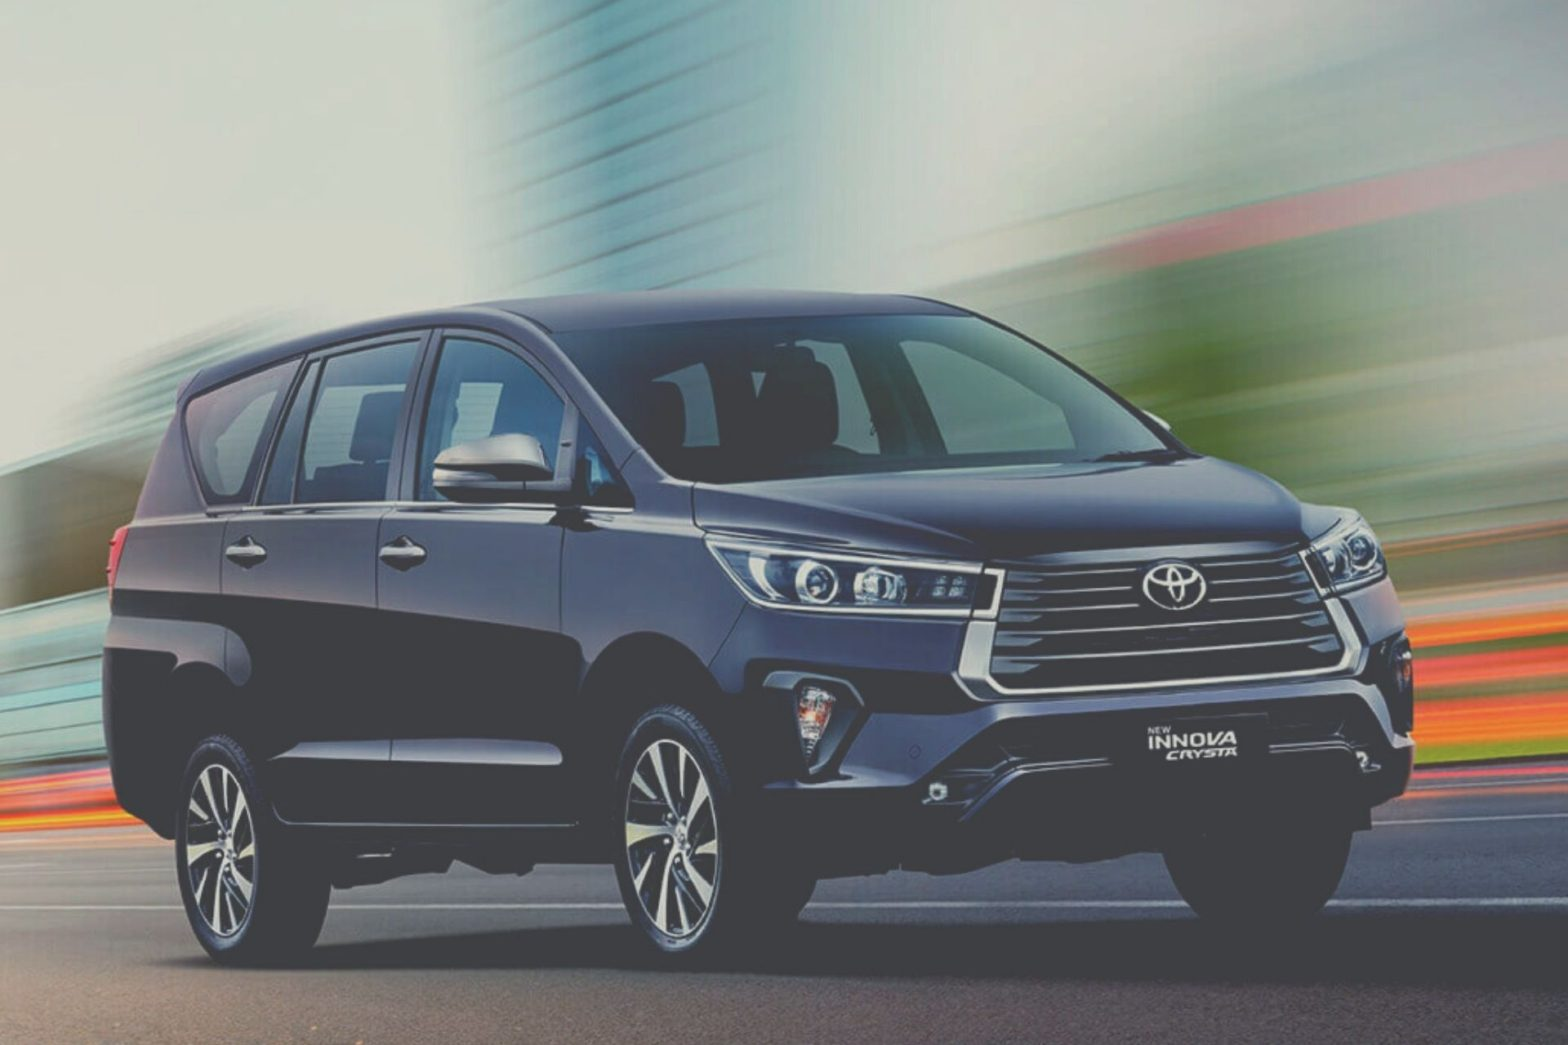 Toyota Innova Crysta Car Rental in Hyderabad with Outstation & Local Tariff